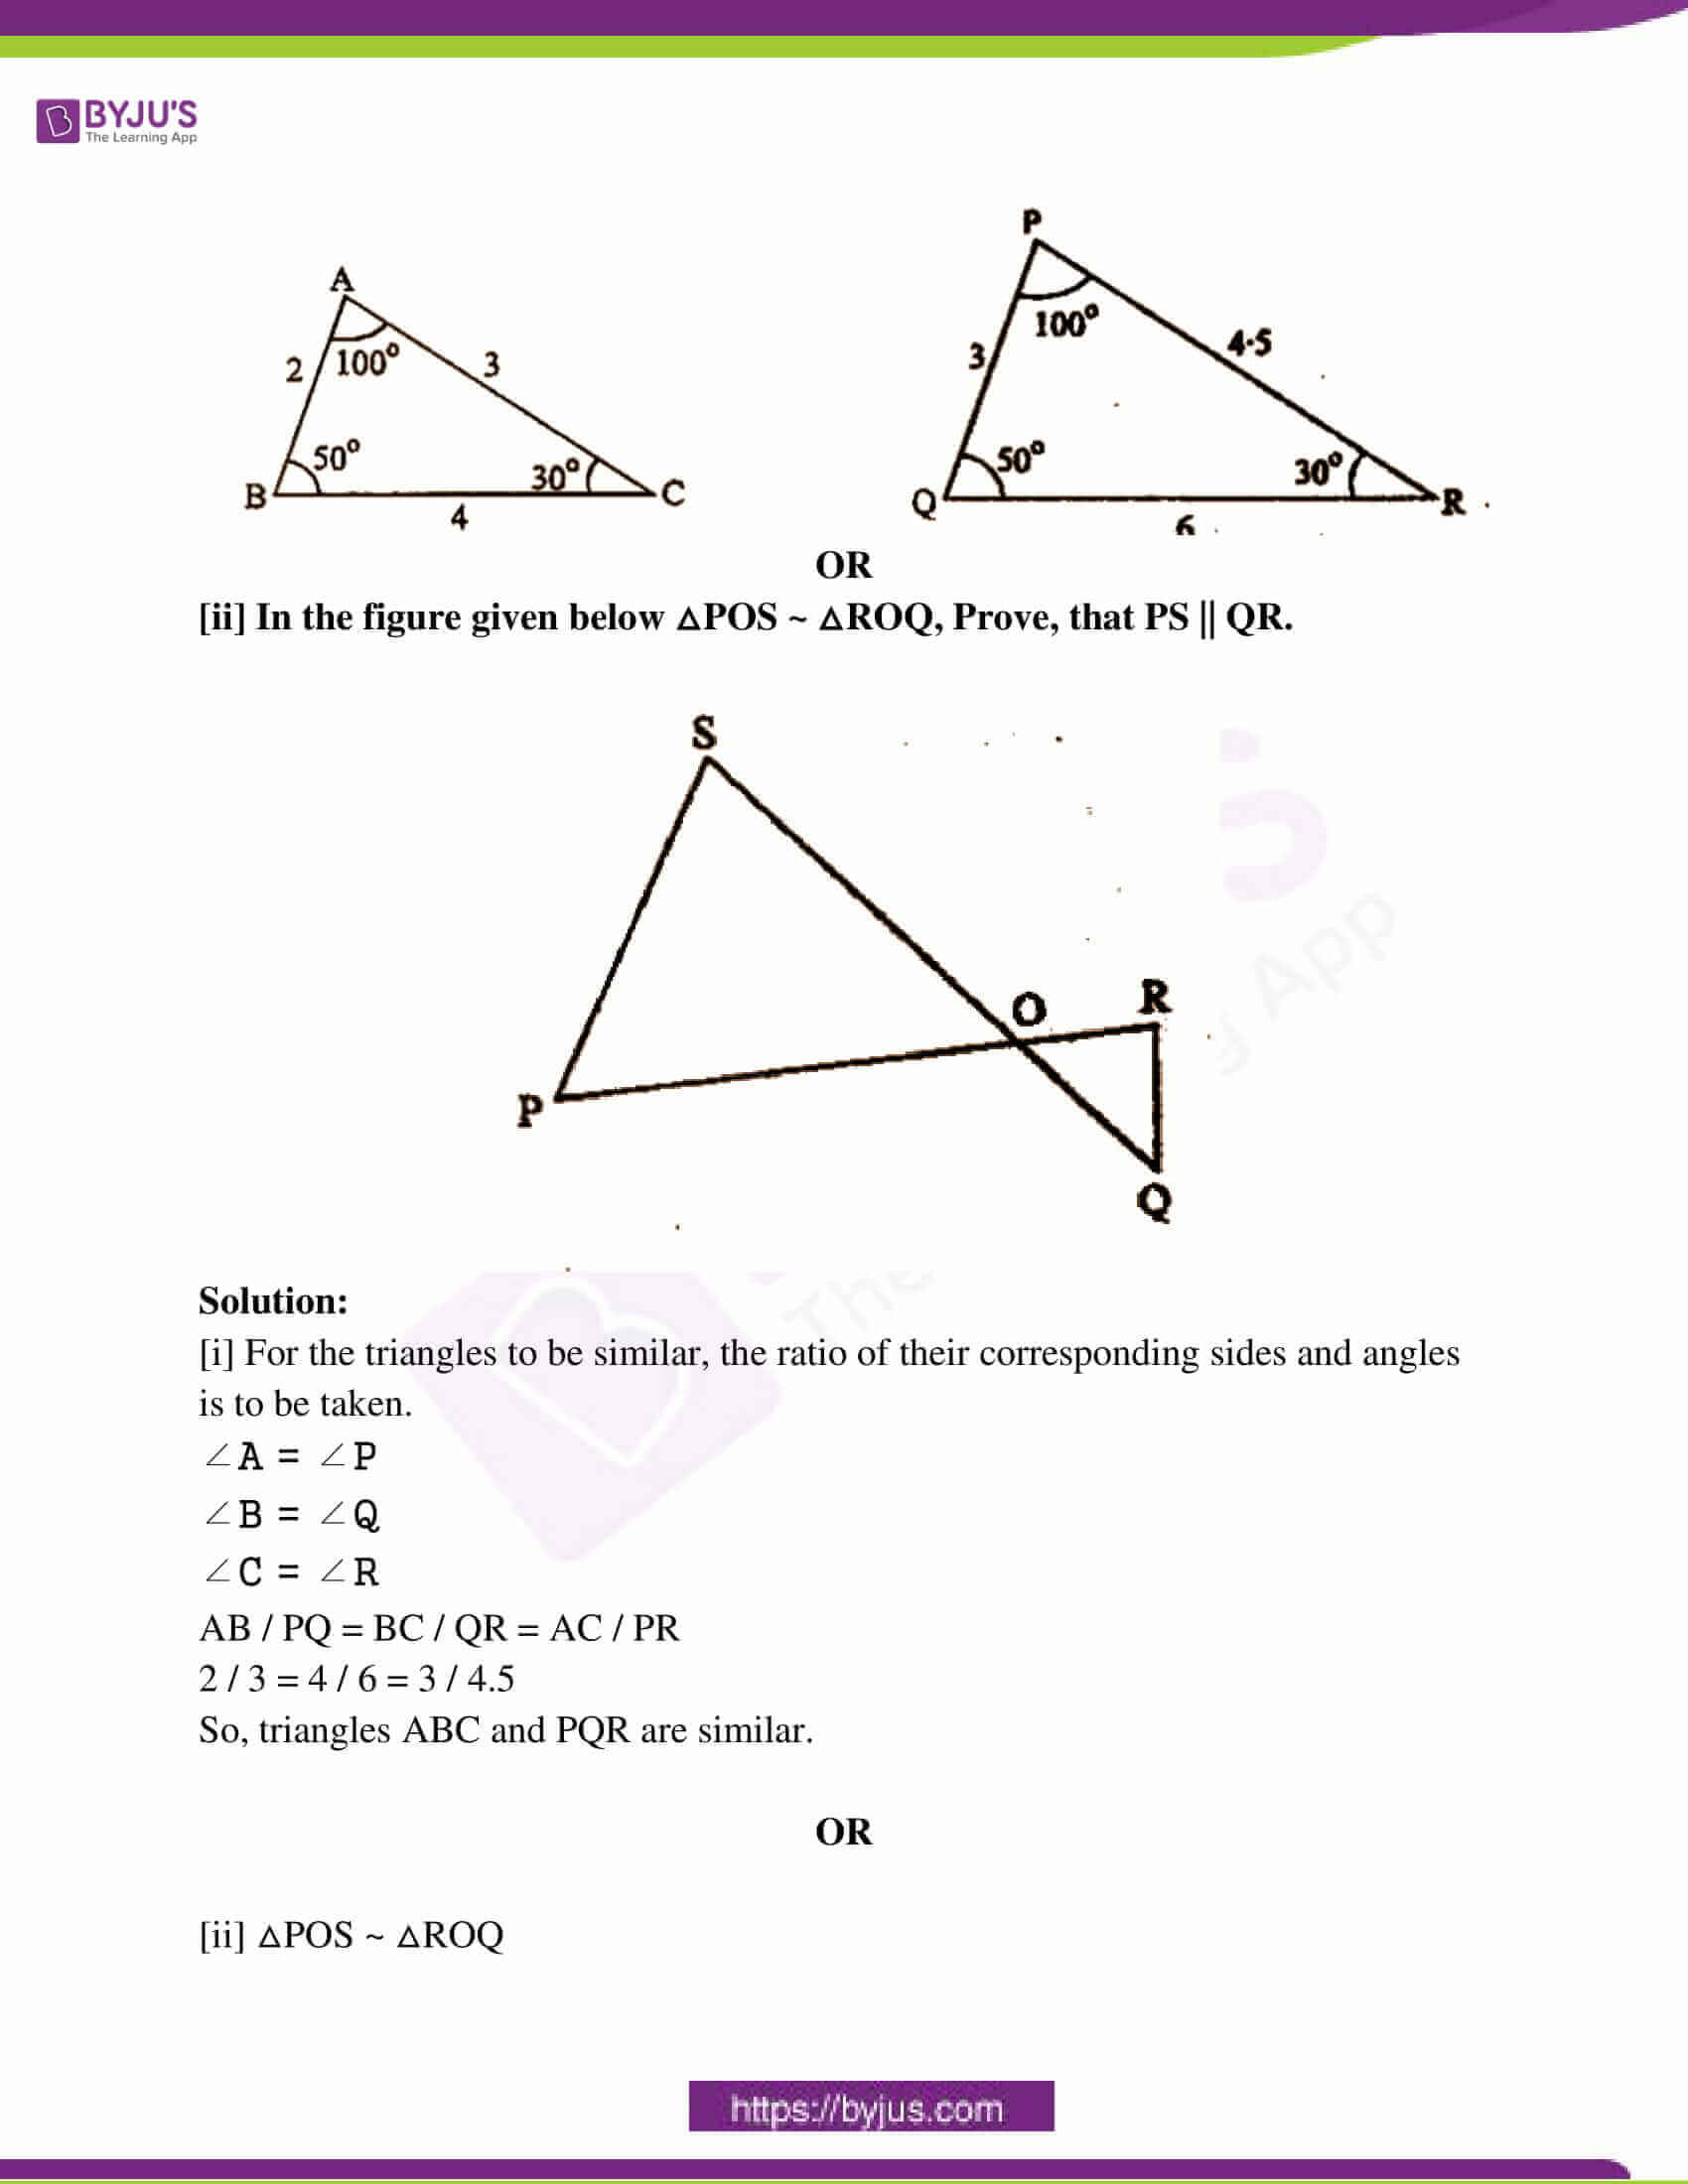 mp class 10 exam question paper with solutions march 2015 05